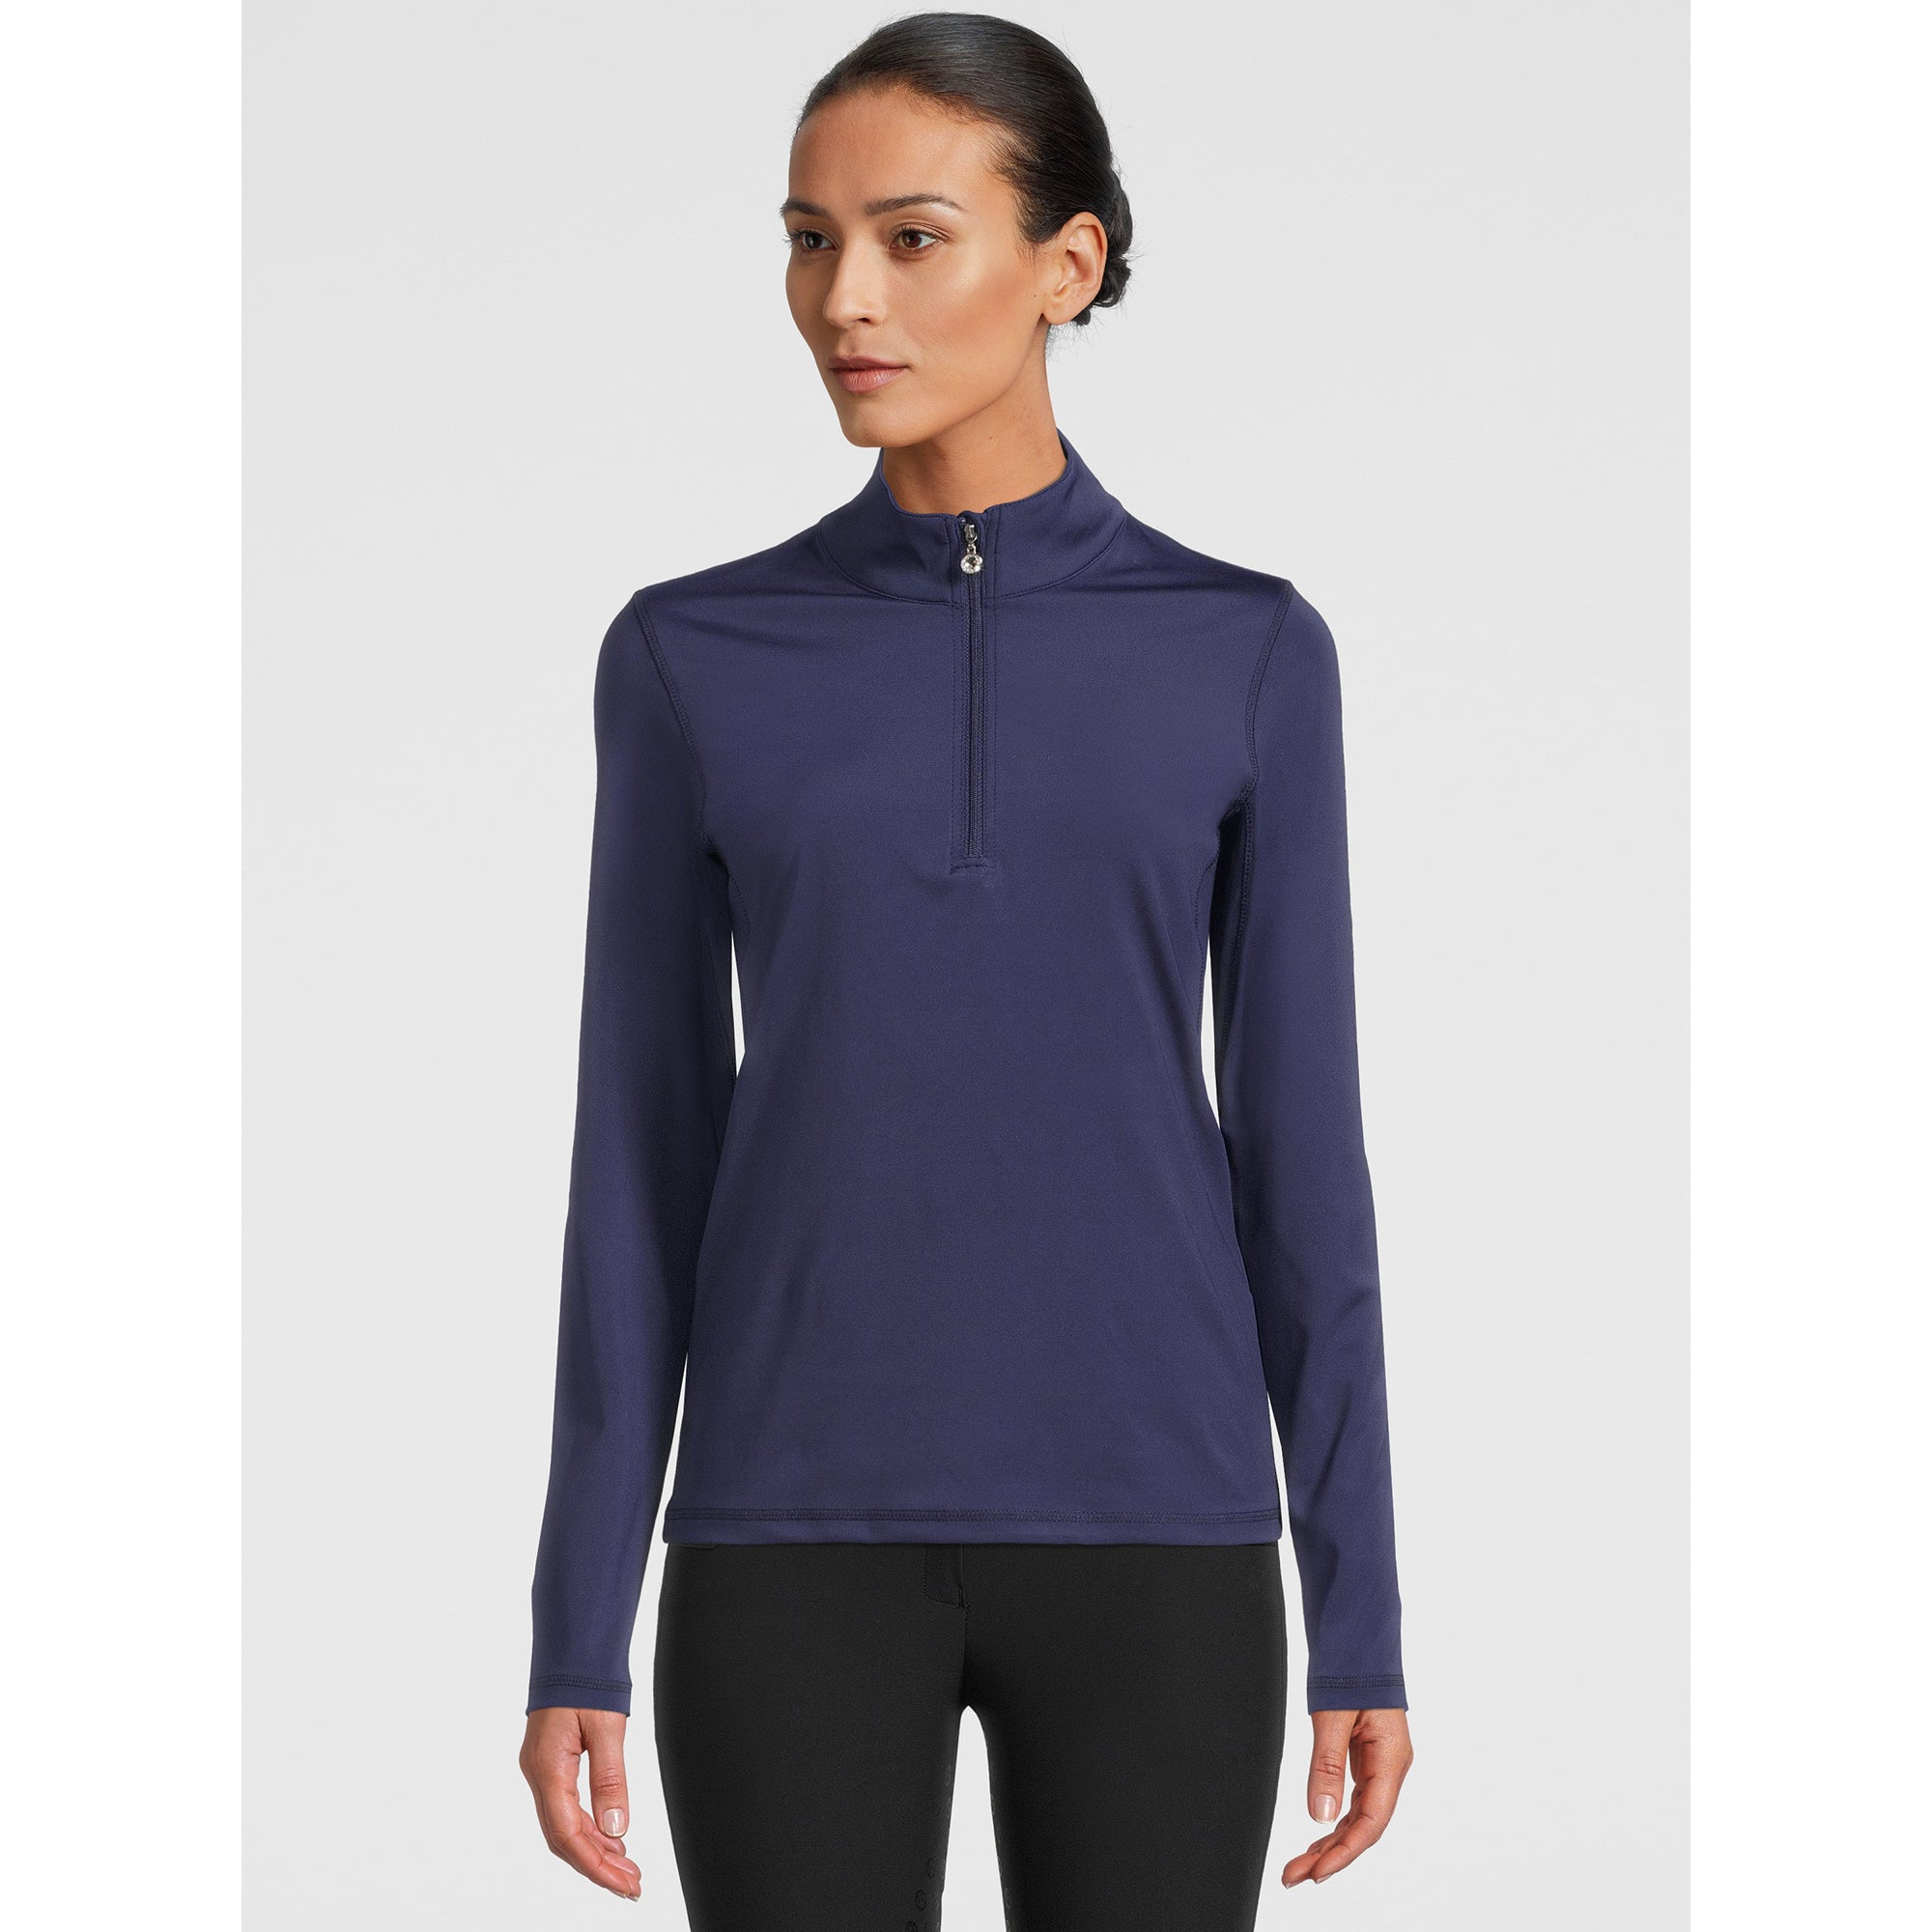 PS of Sweden SS21 Willow Base Layer | Royal Blue